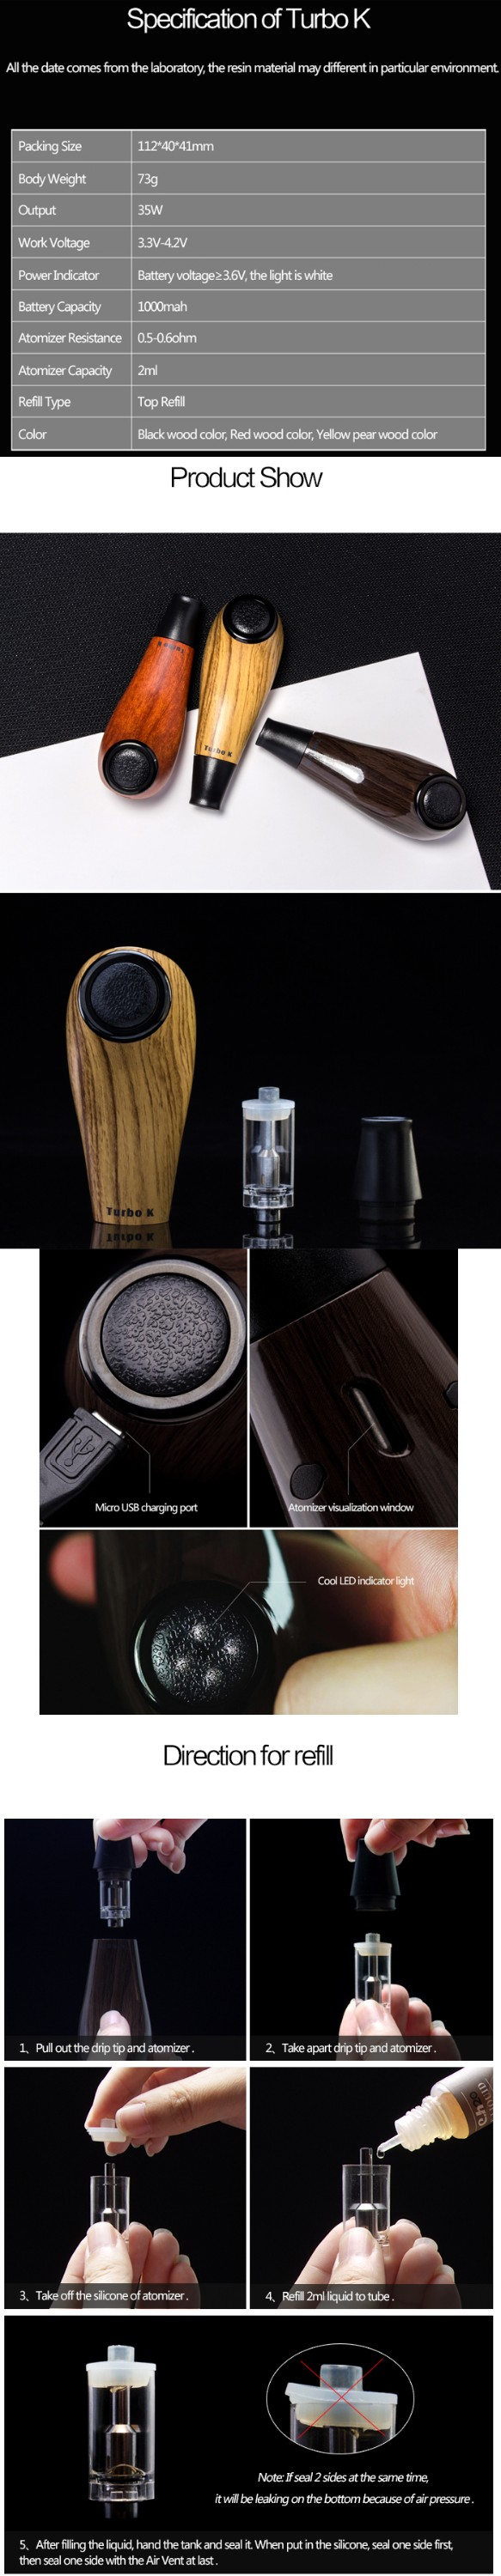 Classic epipe vaporizer kit new kamry epipe Turbo K e-pipe with sub ohm tank 0.5ohm atomizer